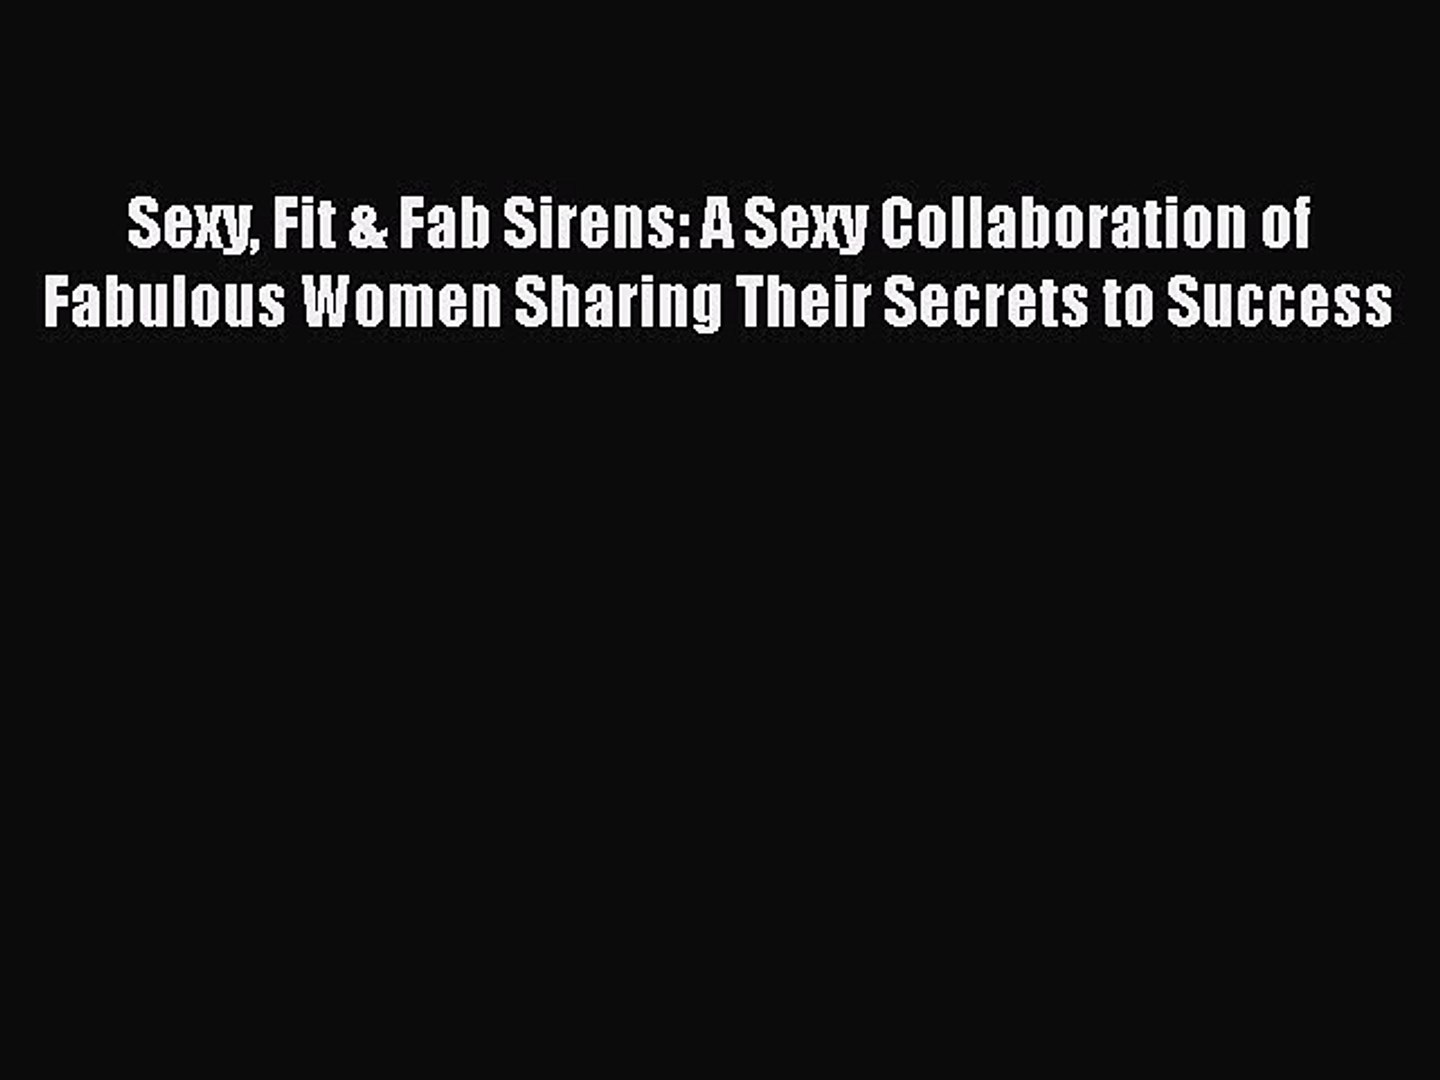 Read Books Sexy Fit & Fab Sirens: A Sexy Collaboration of Fabulous Women Sharing Their Secrets